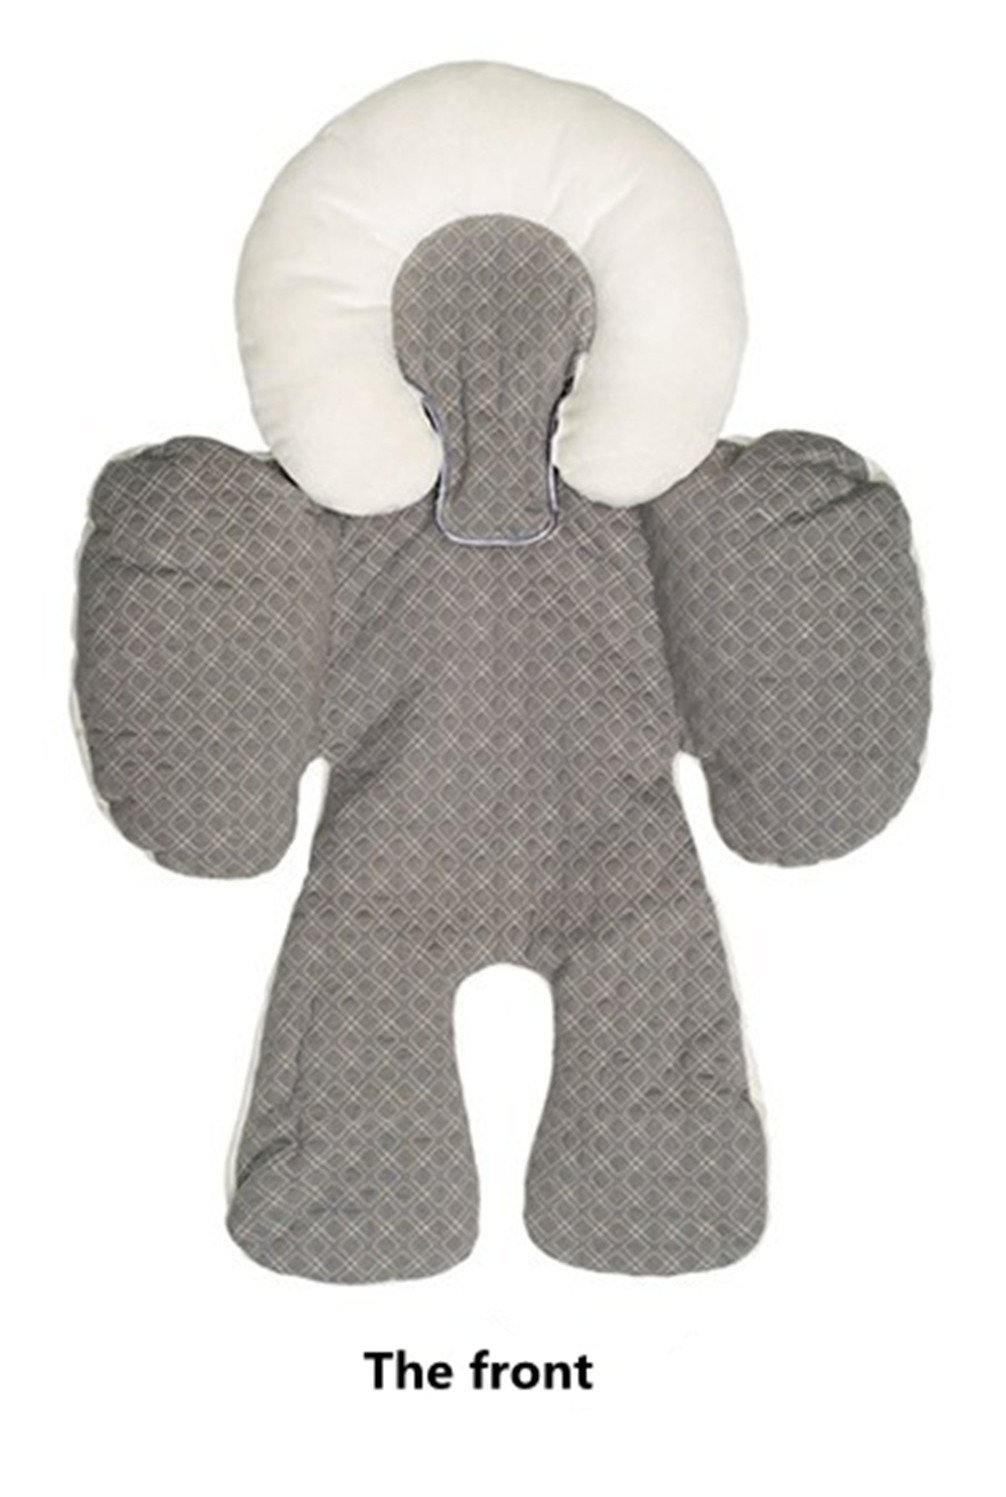 Ben Baby Infants Body Support Pillow with Head and Neck Pillow for Car Seats Strollers,Cushion Available on Both Sides (Grey)